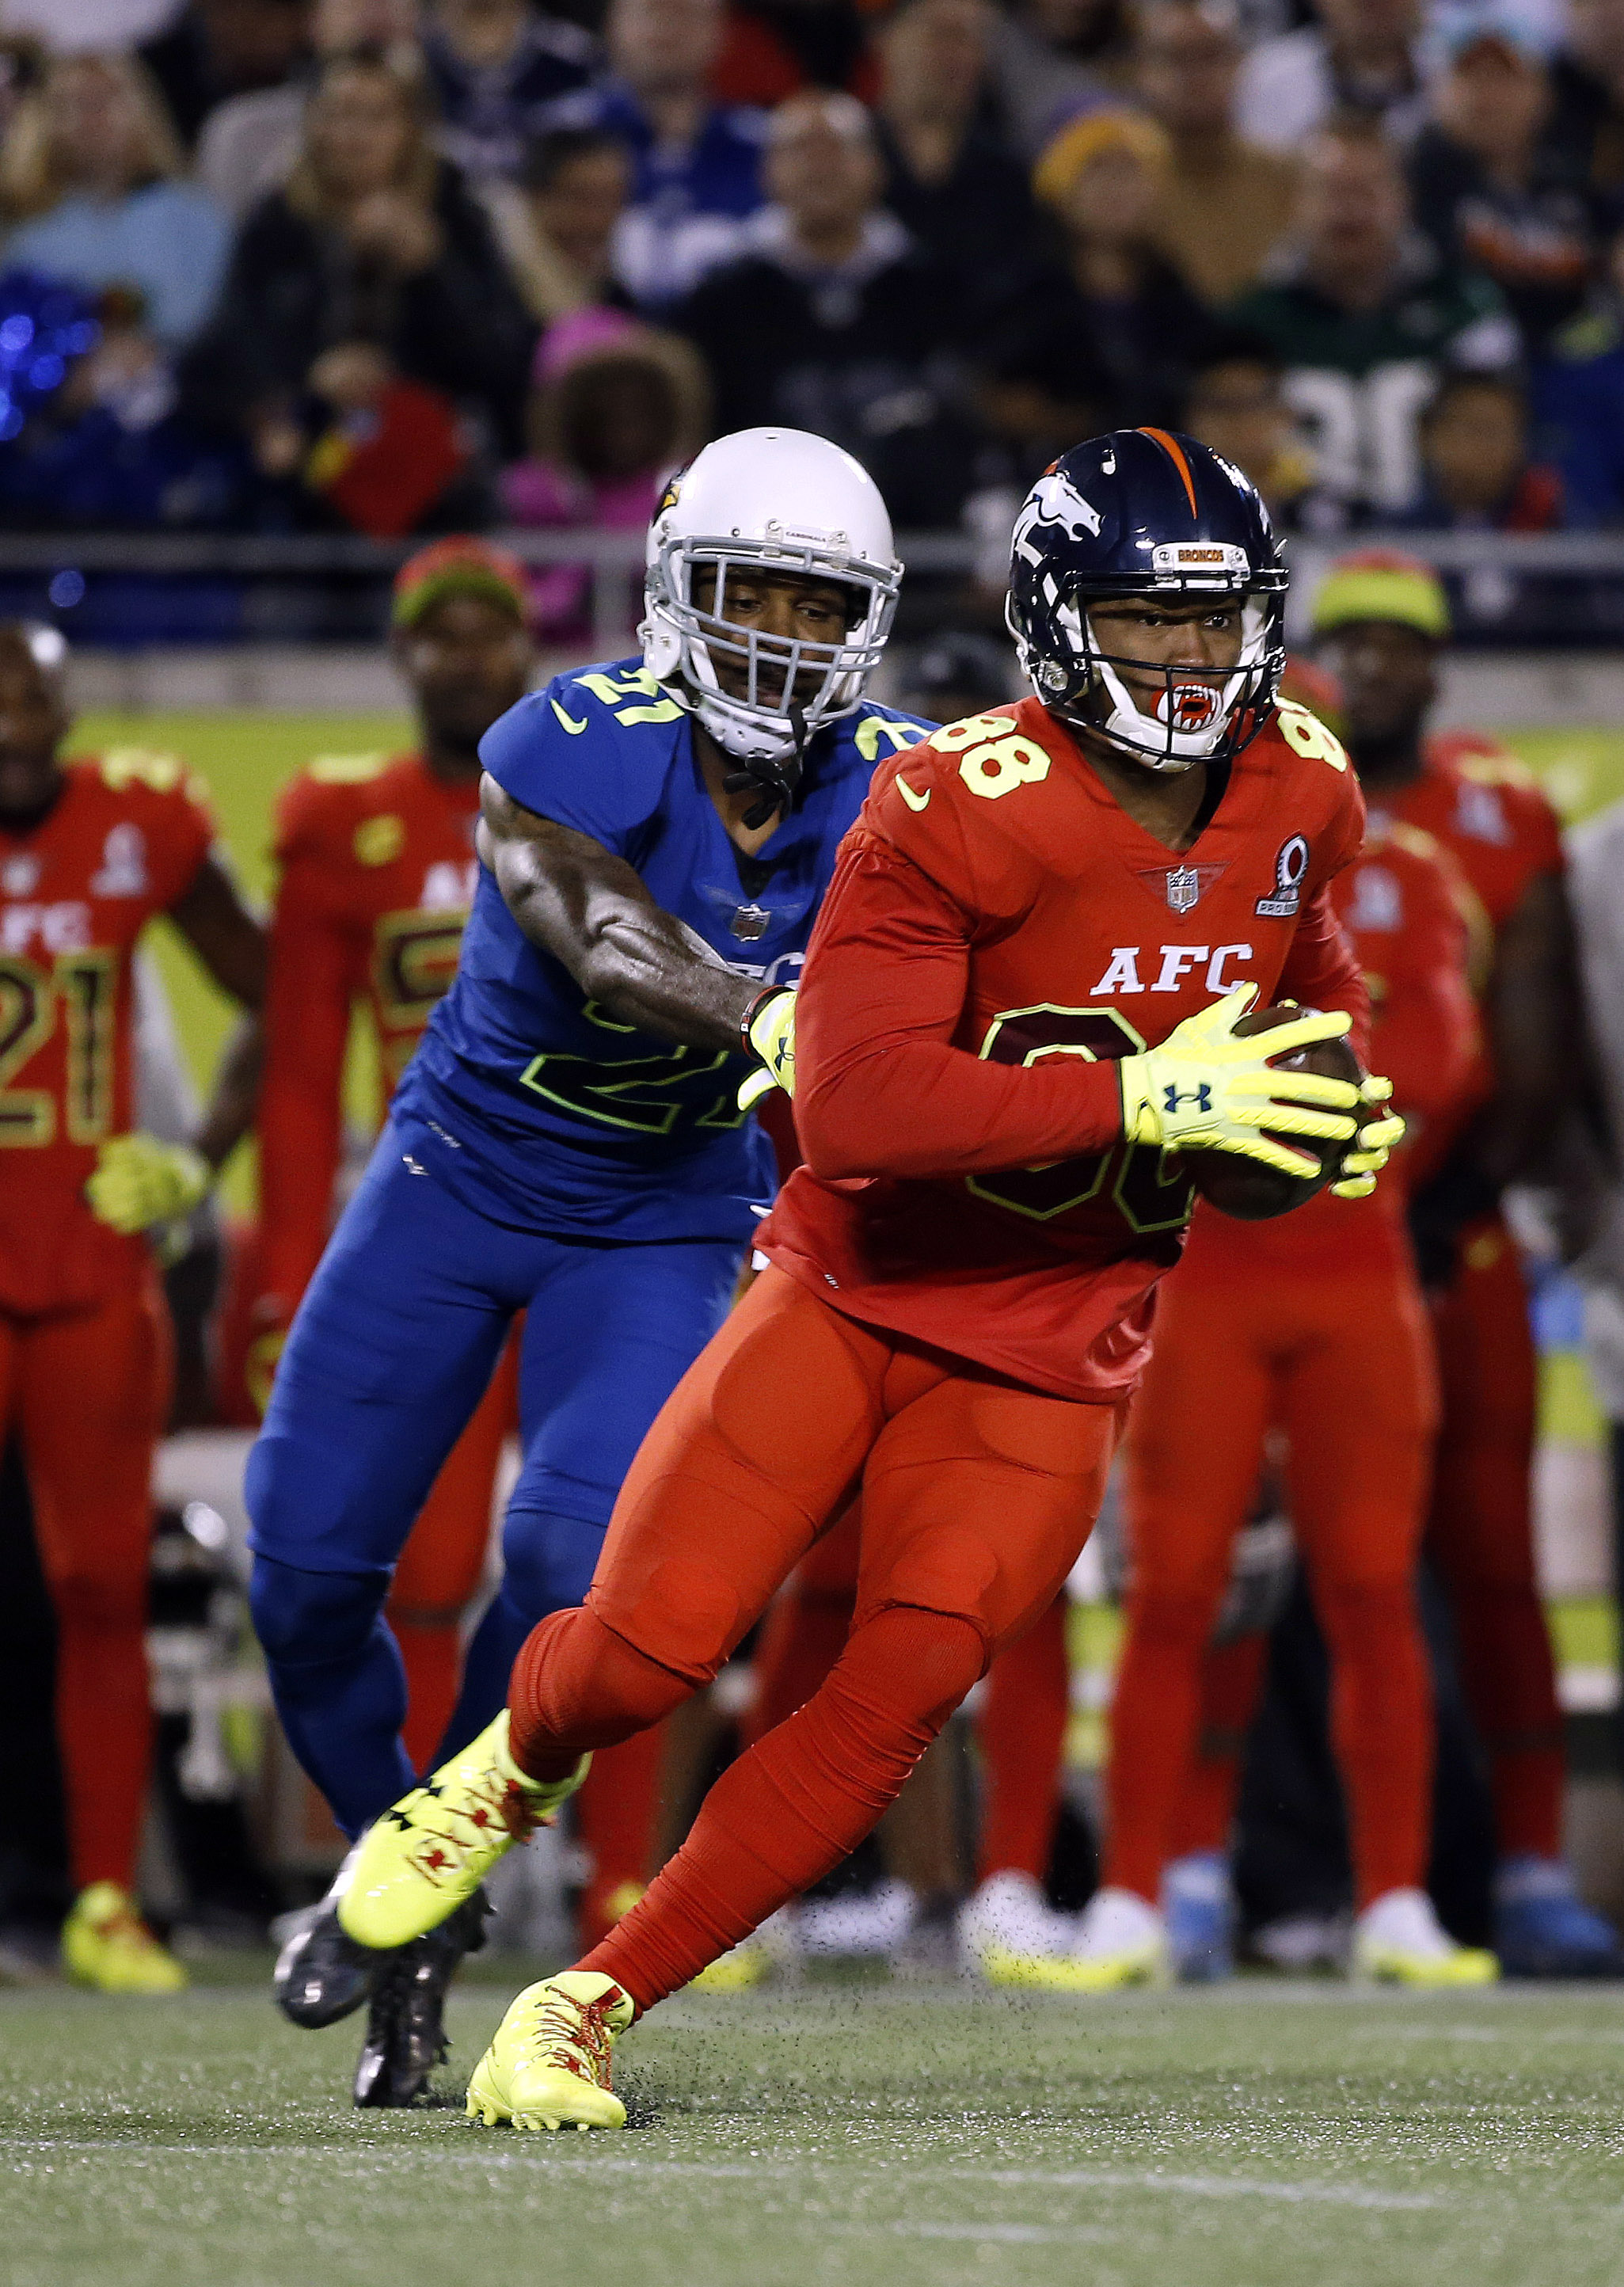 Arizona Cardinals: Peterson on losing side in Pro Bowl